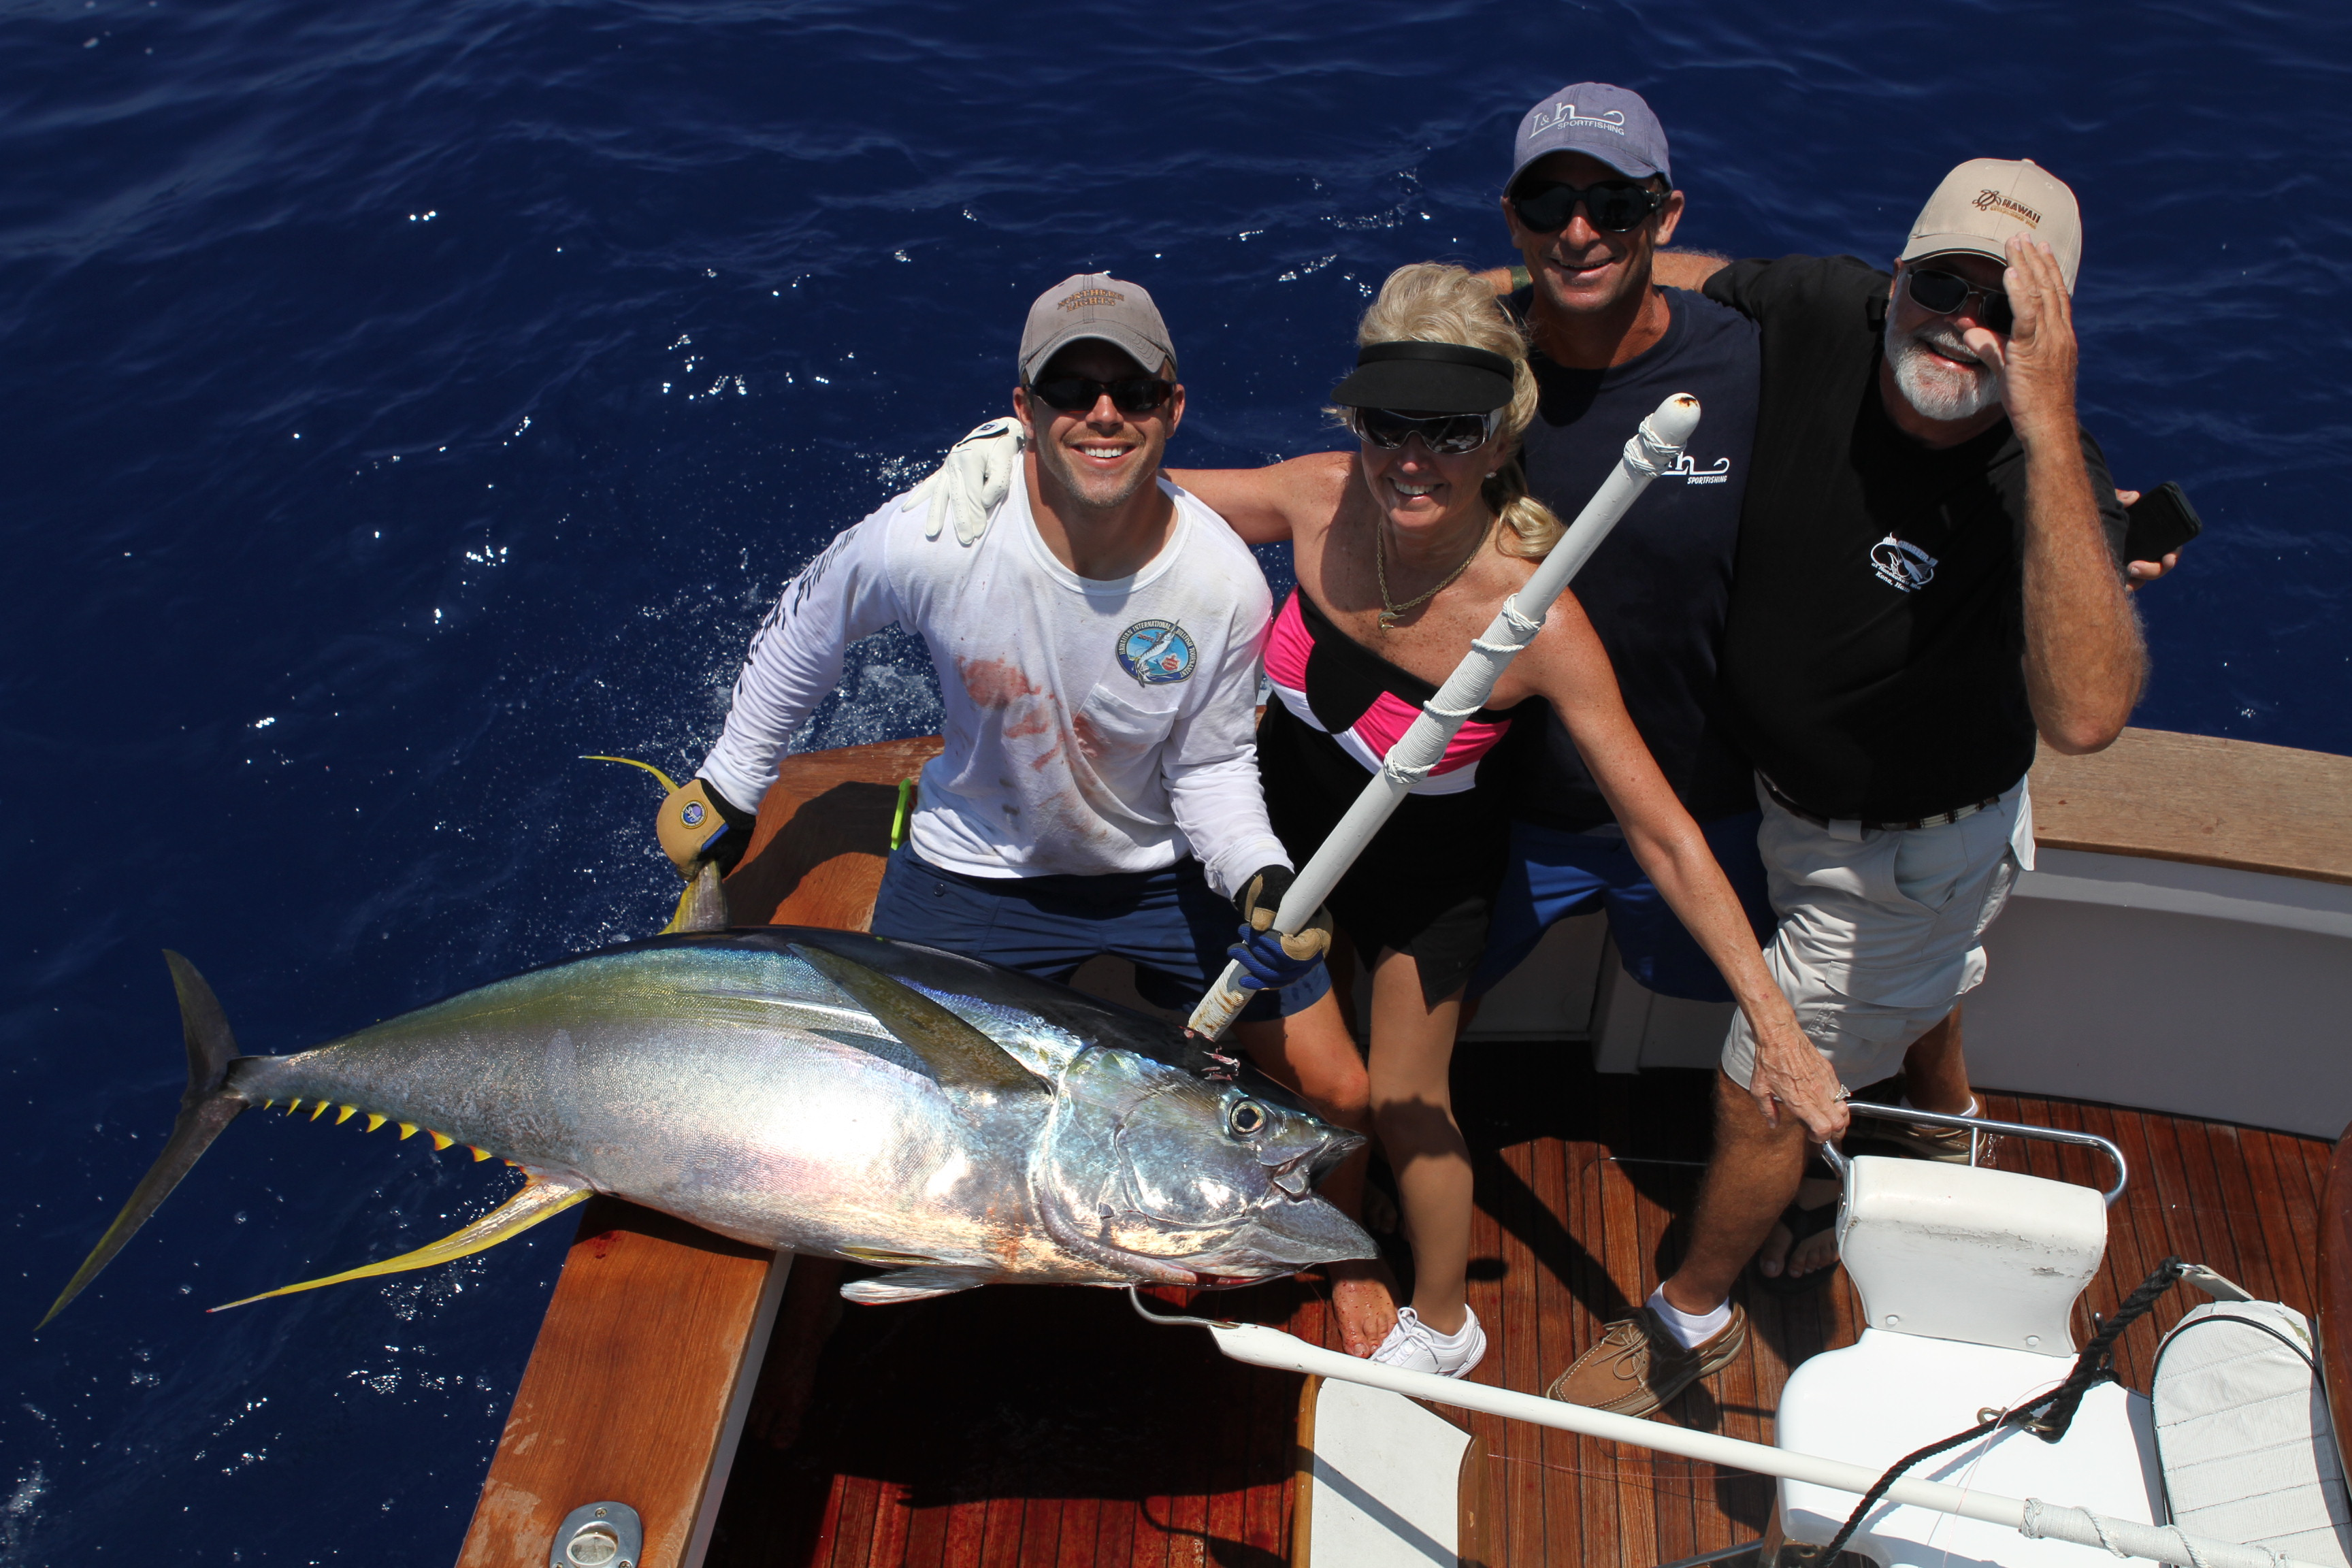 Kona fishing charter archives page 3 of 13 for Kona fishing charters